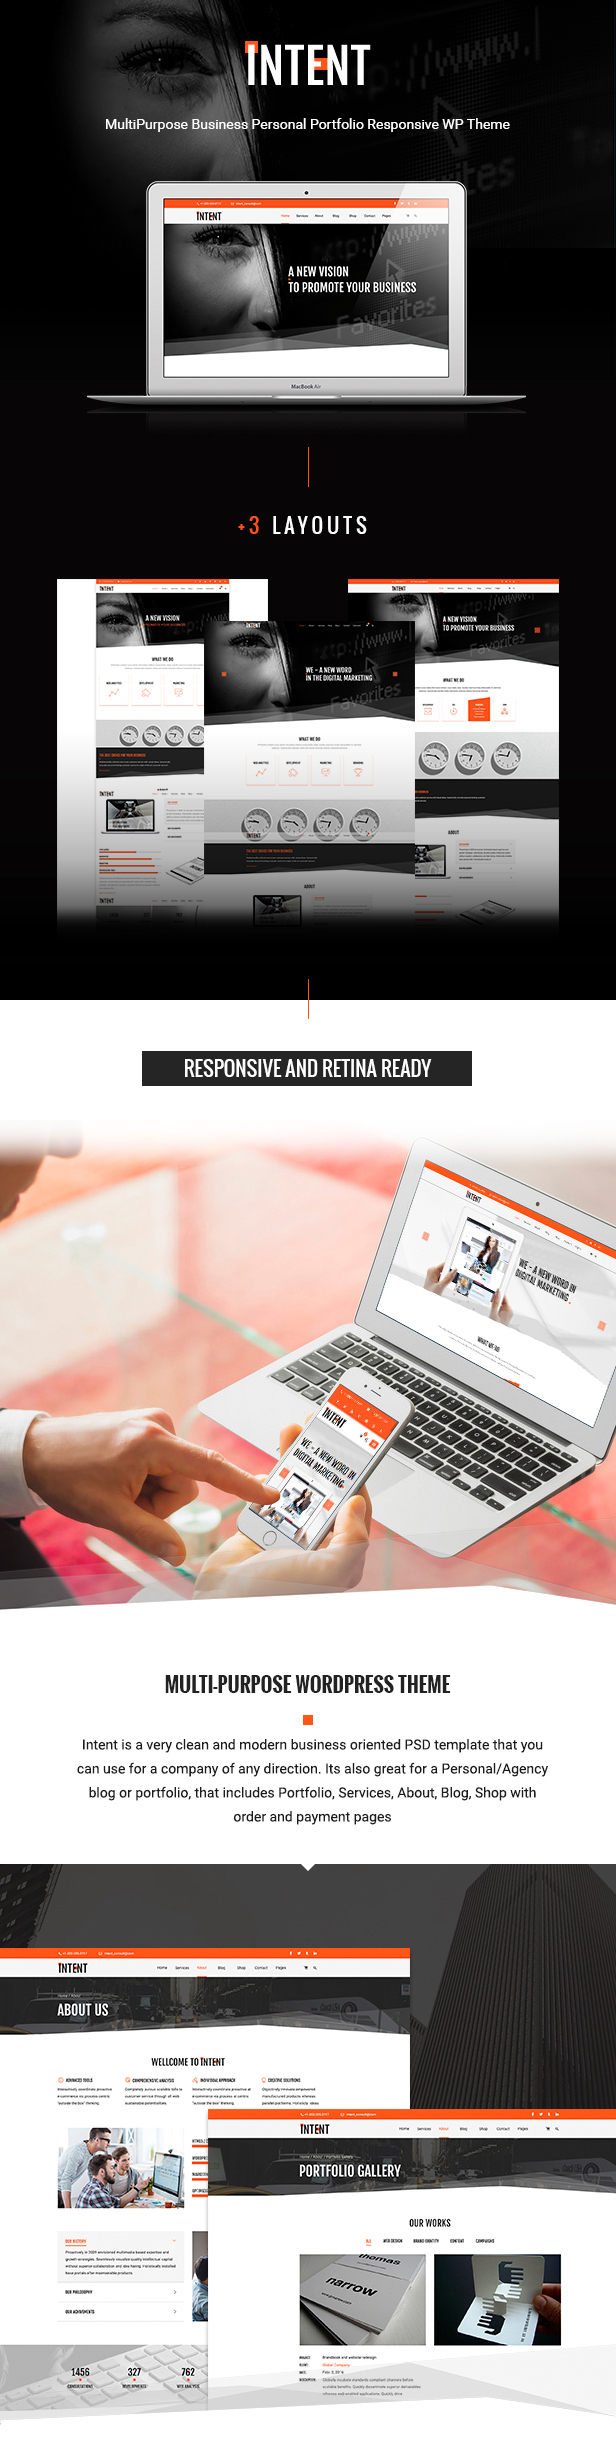 Intent Business Theme